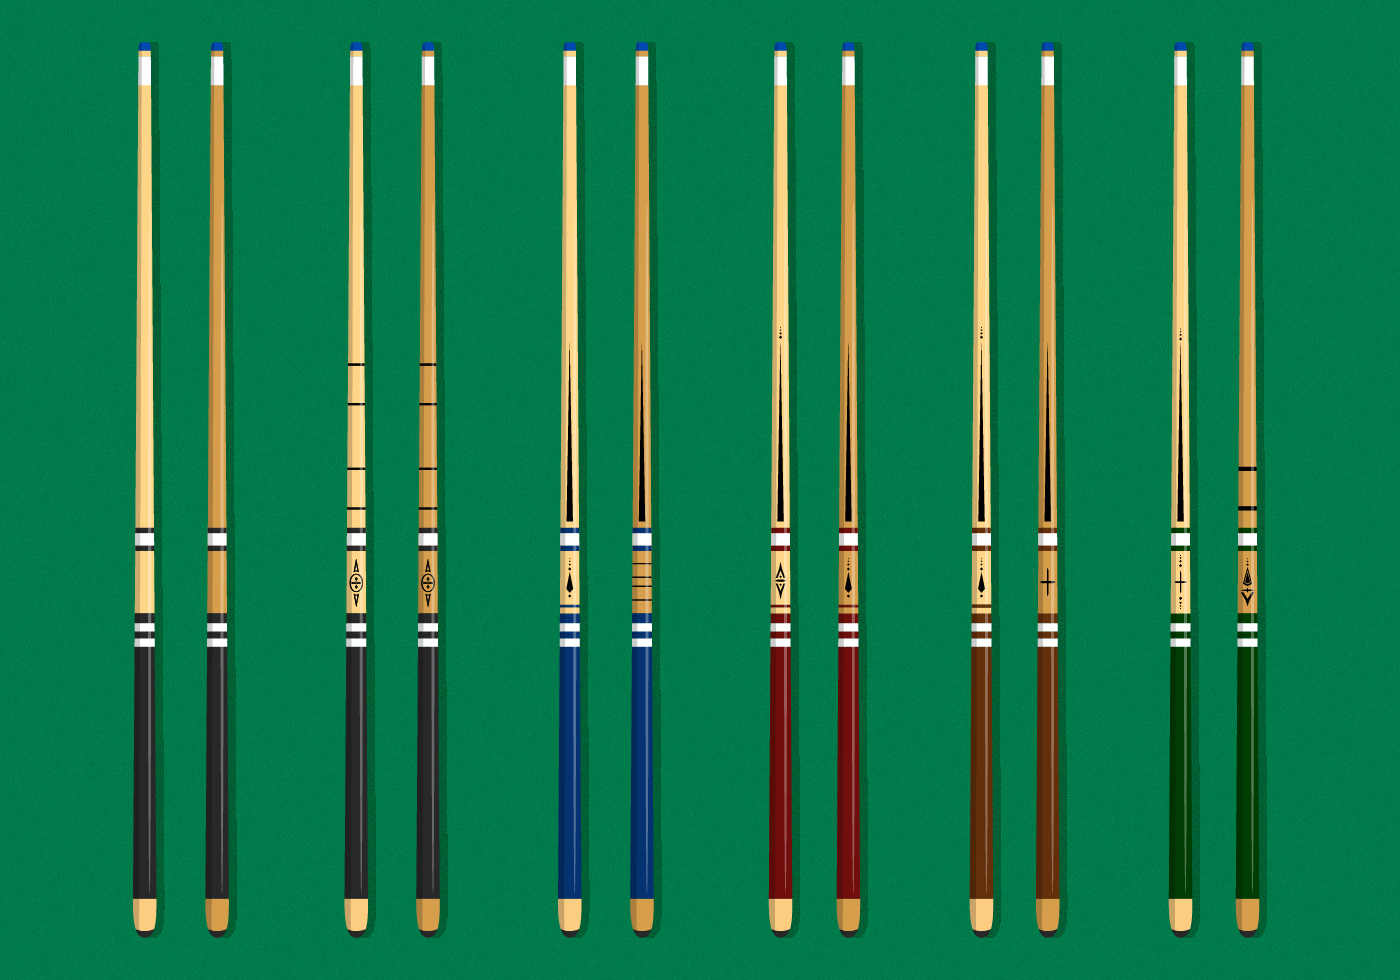 Awesome Pool Stick Download Free Vectors Clipart